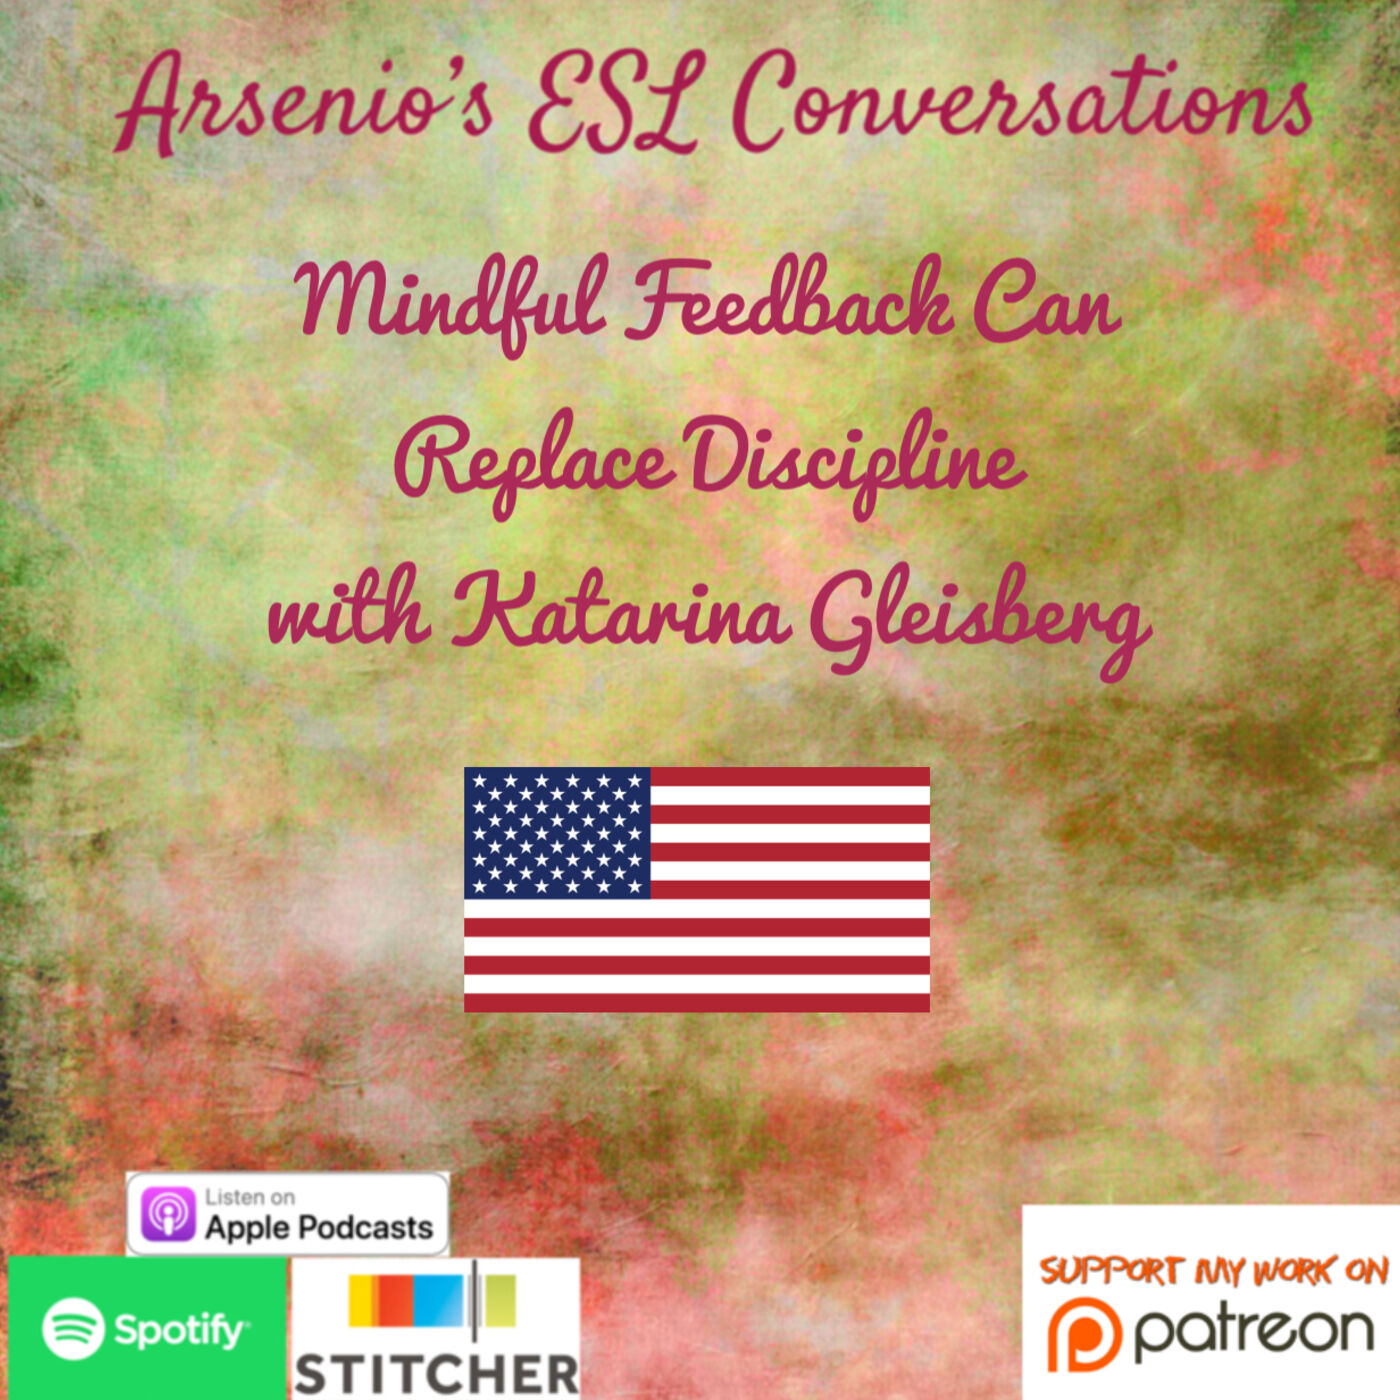 Arsenio's ESL Podcast: Mindful Feedback can Replace Discipline with Katarina Gleisberg